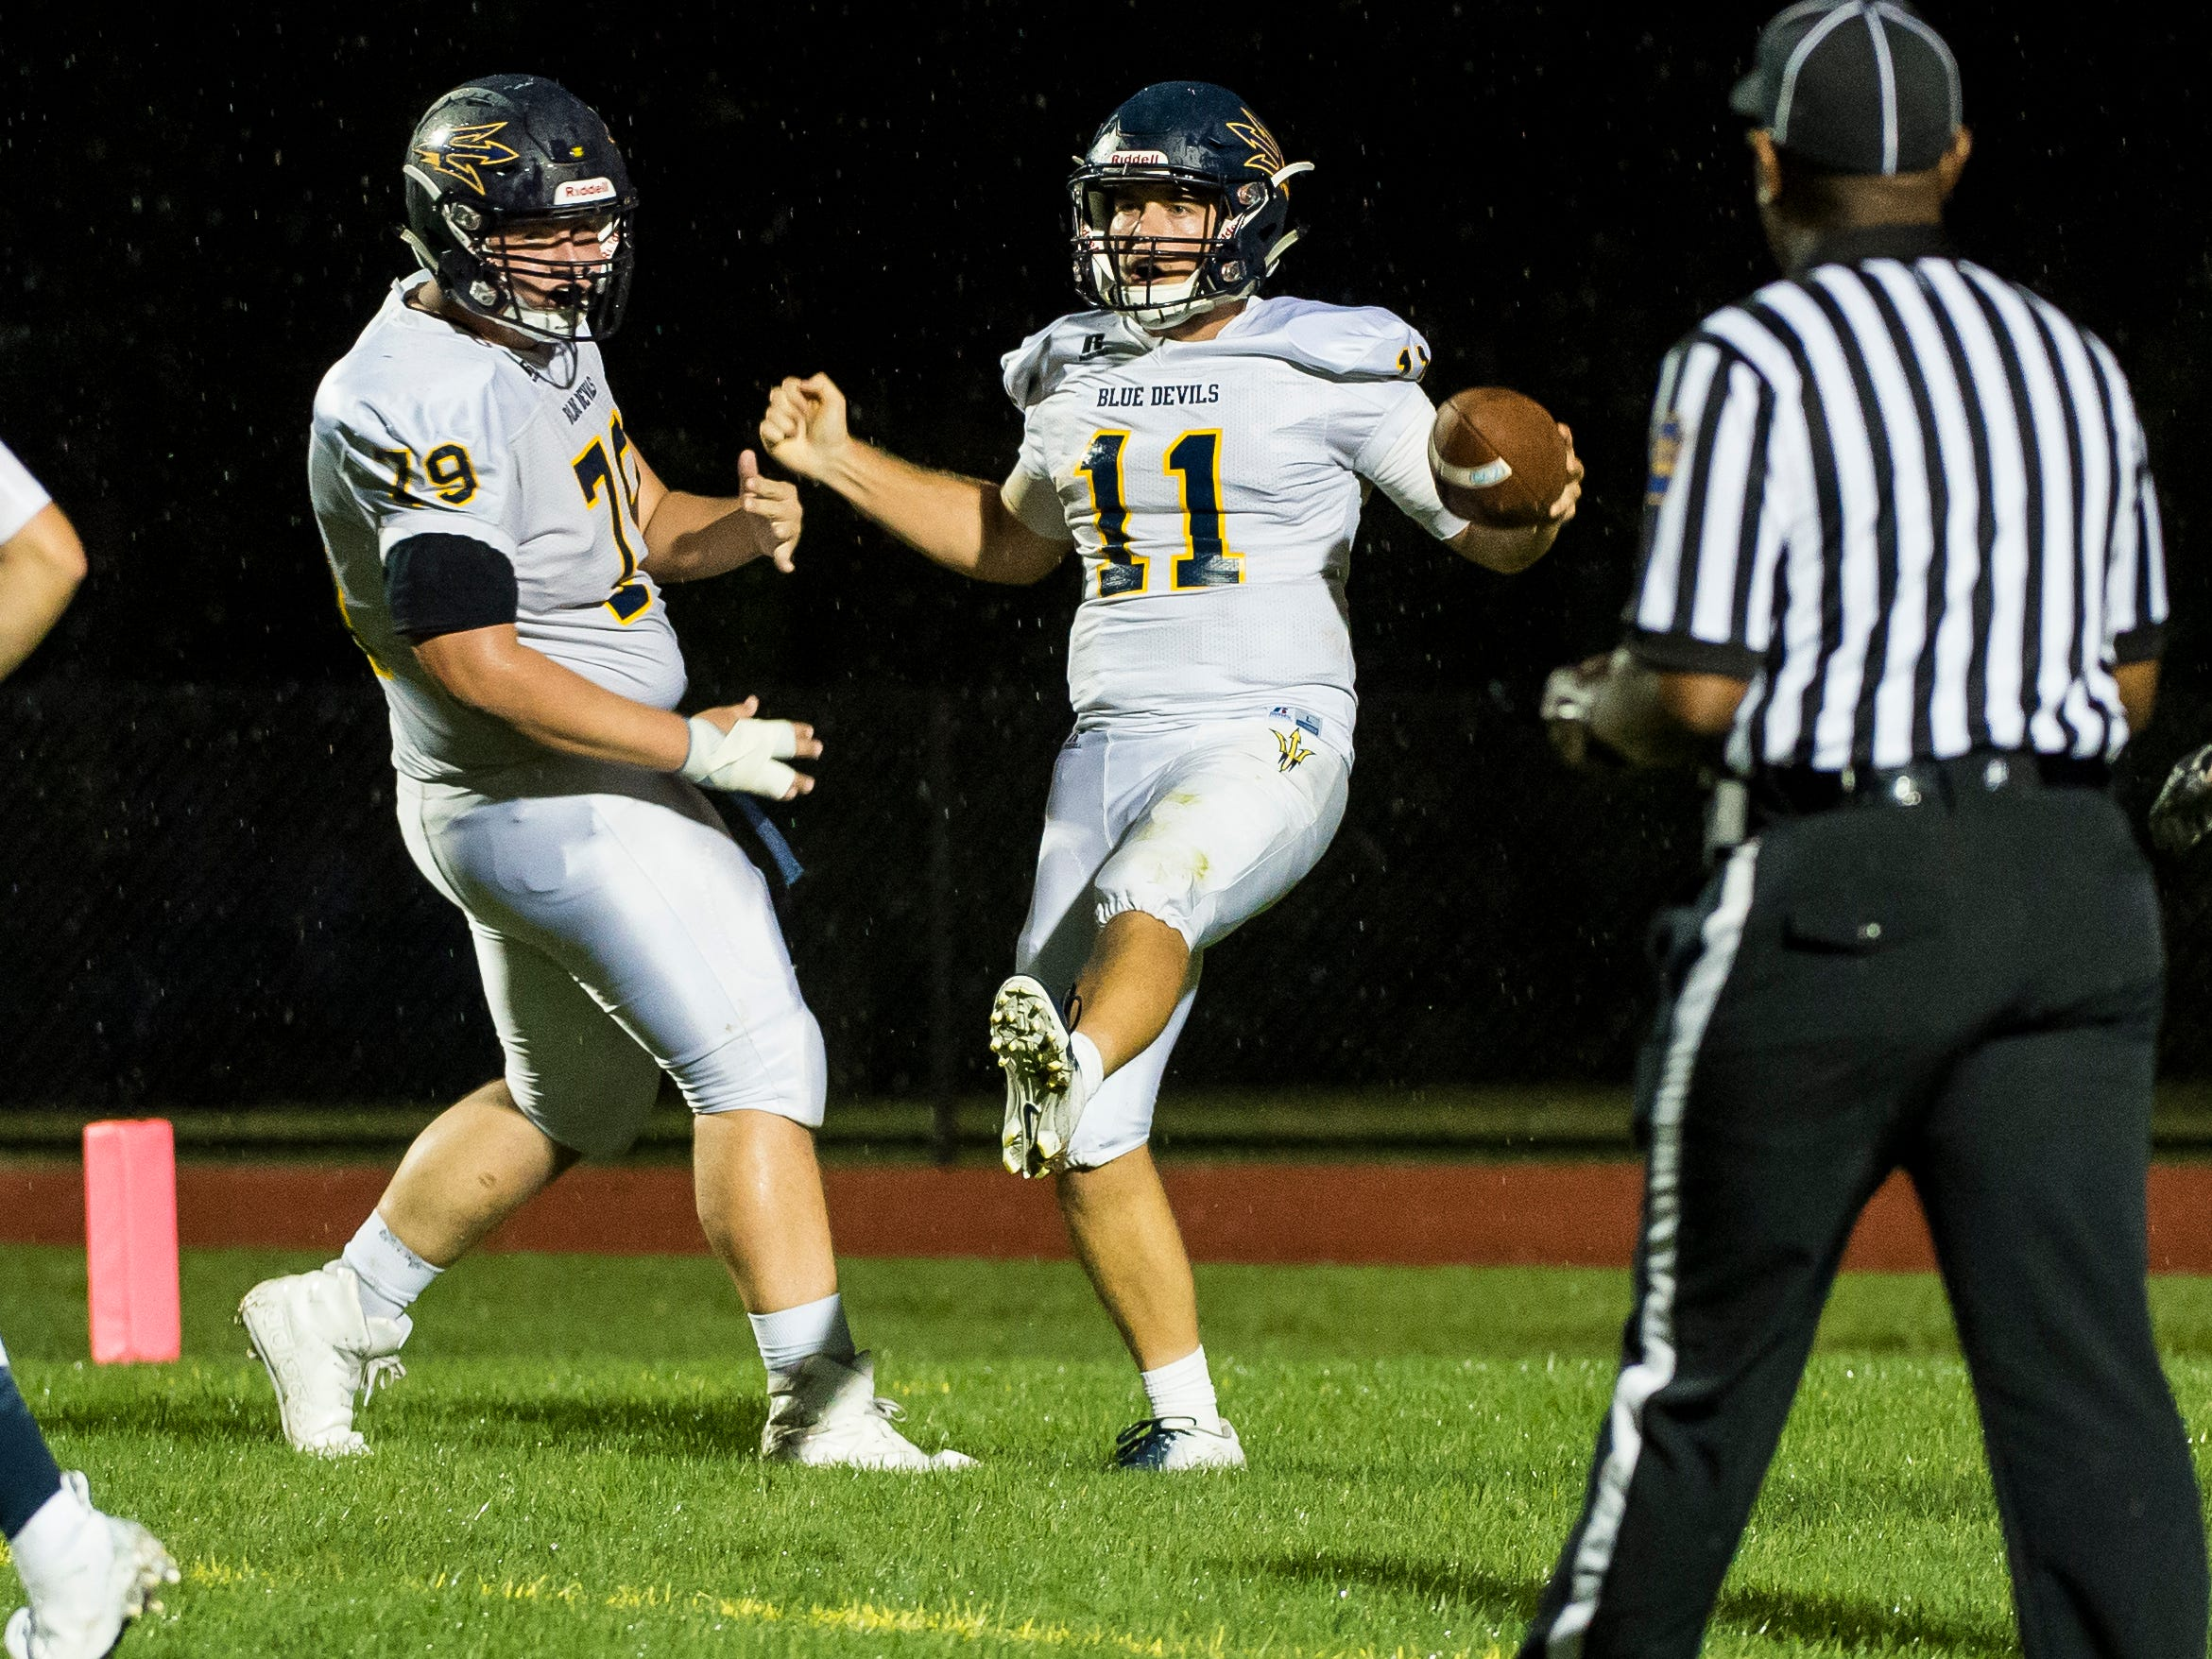 Greencastle-Antrim's Max McDowell (11) celebrates a touchdown during play against Hanover on Friday, September 7, 2018.